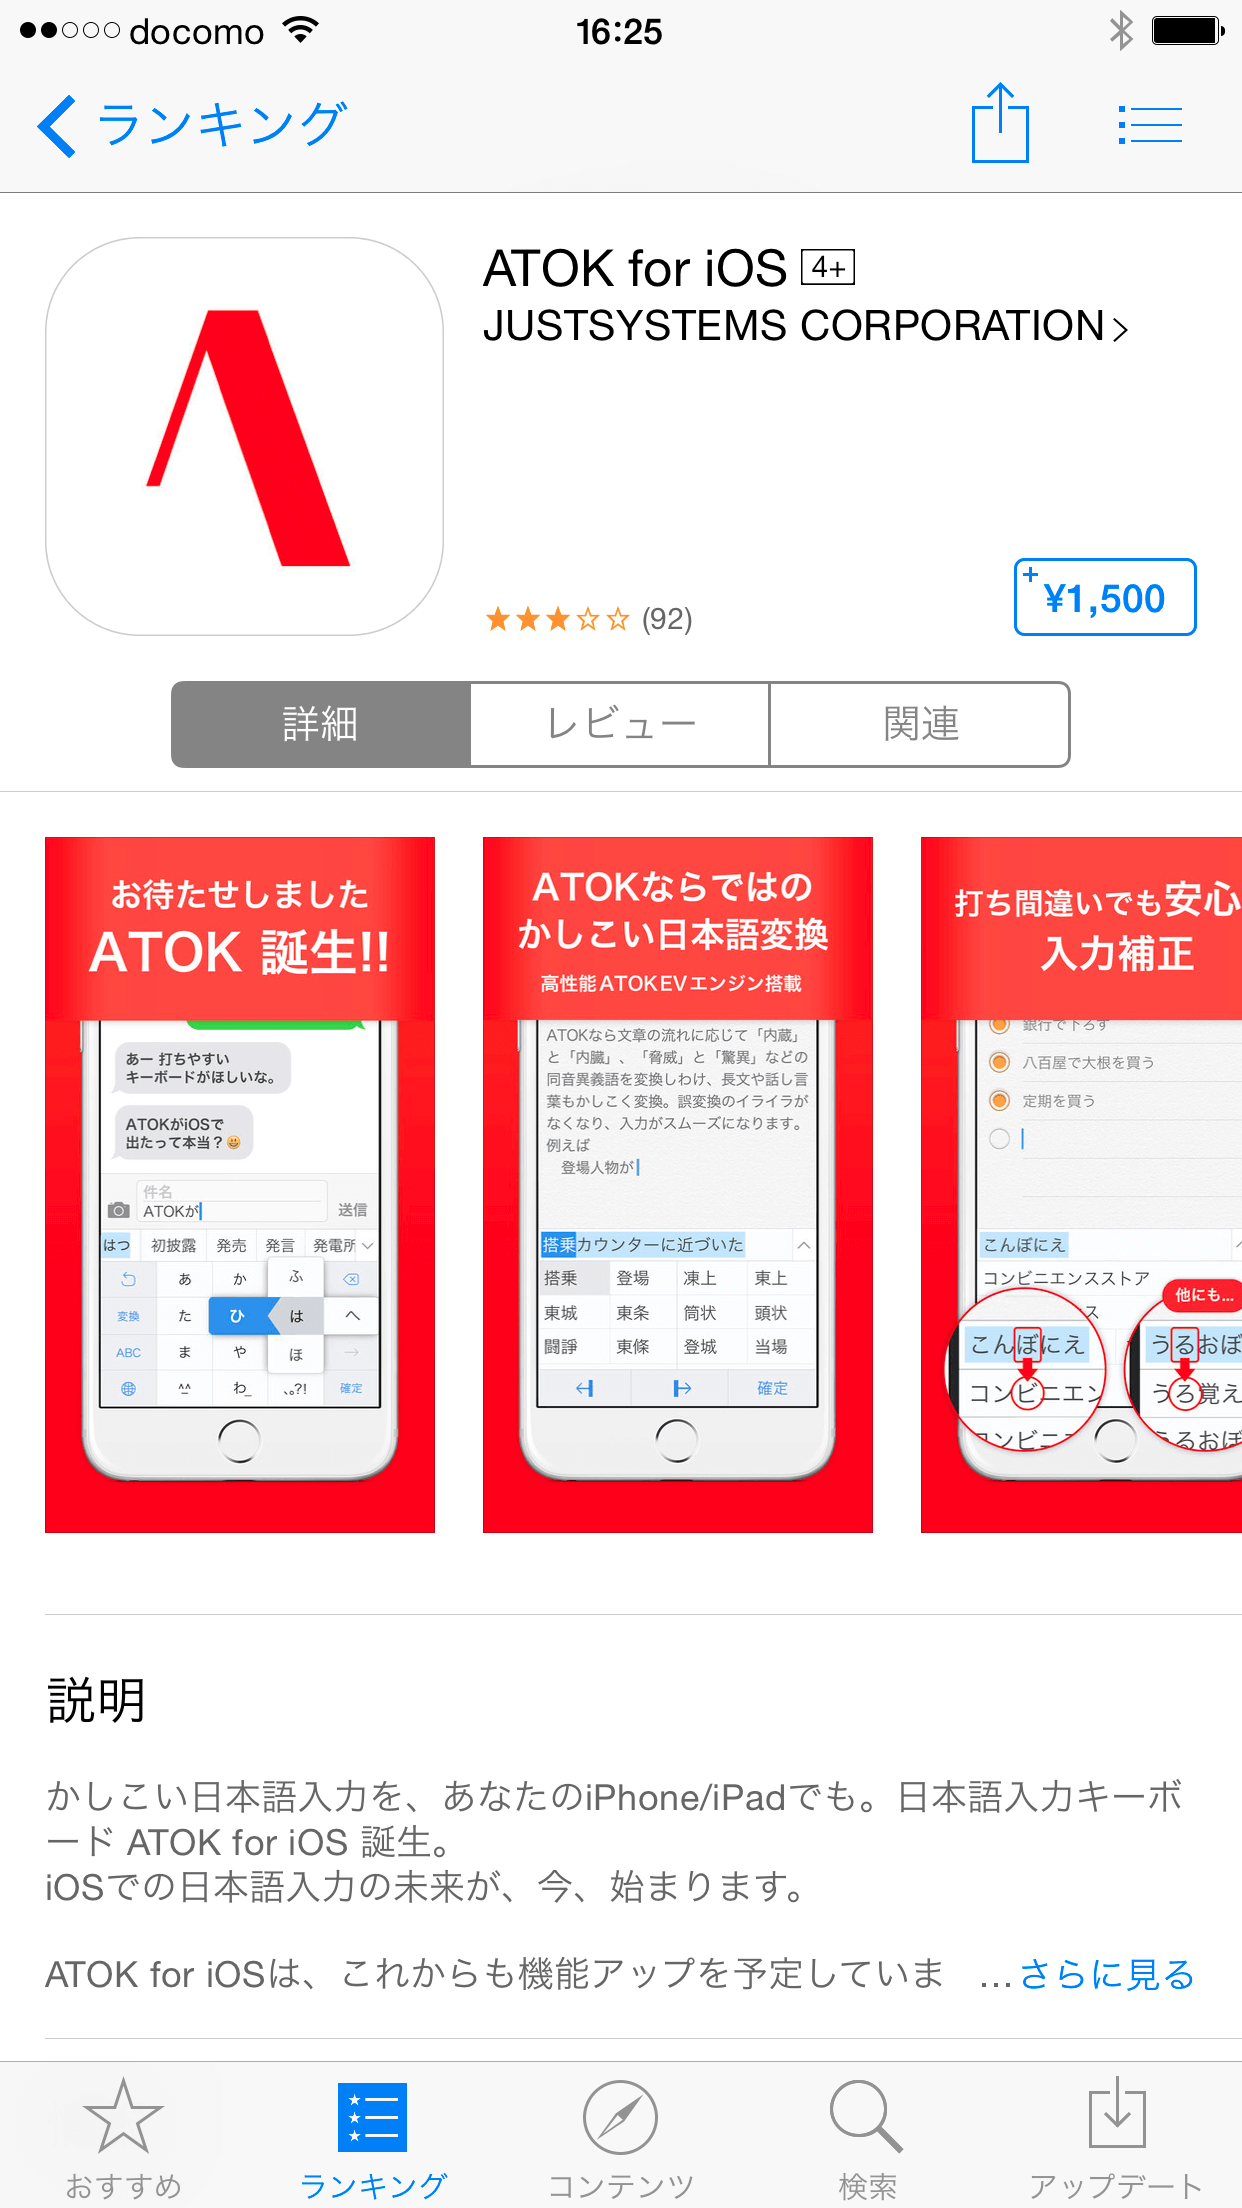 ATOK for iOSをインストールする